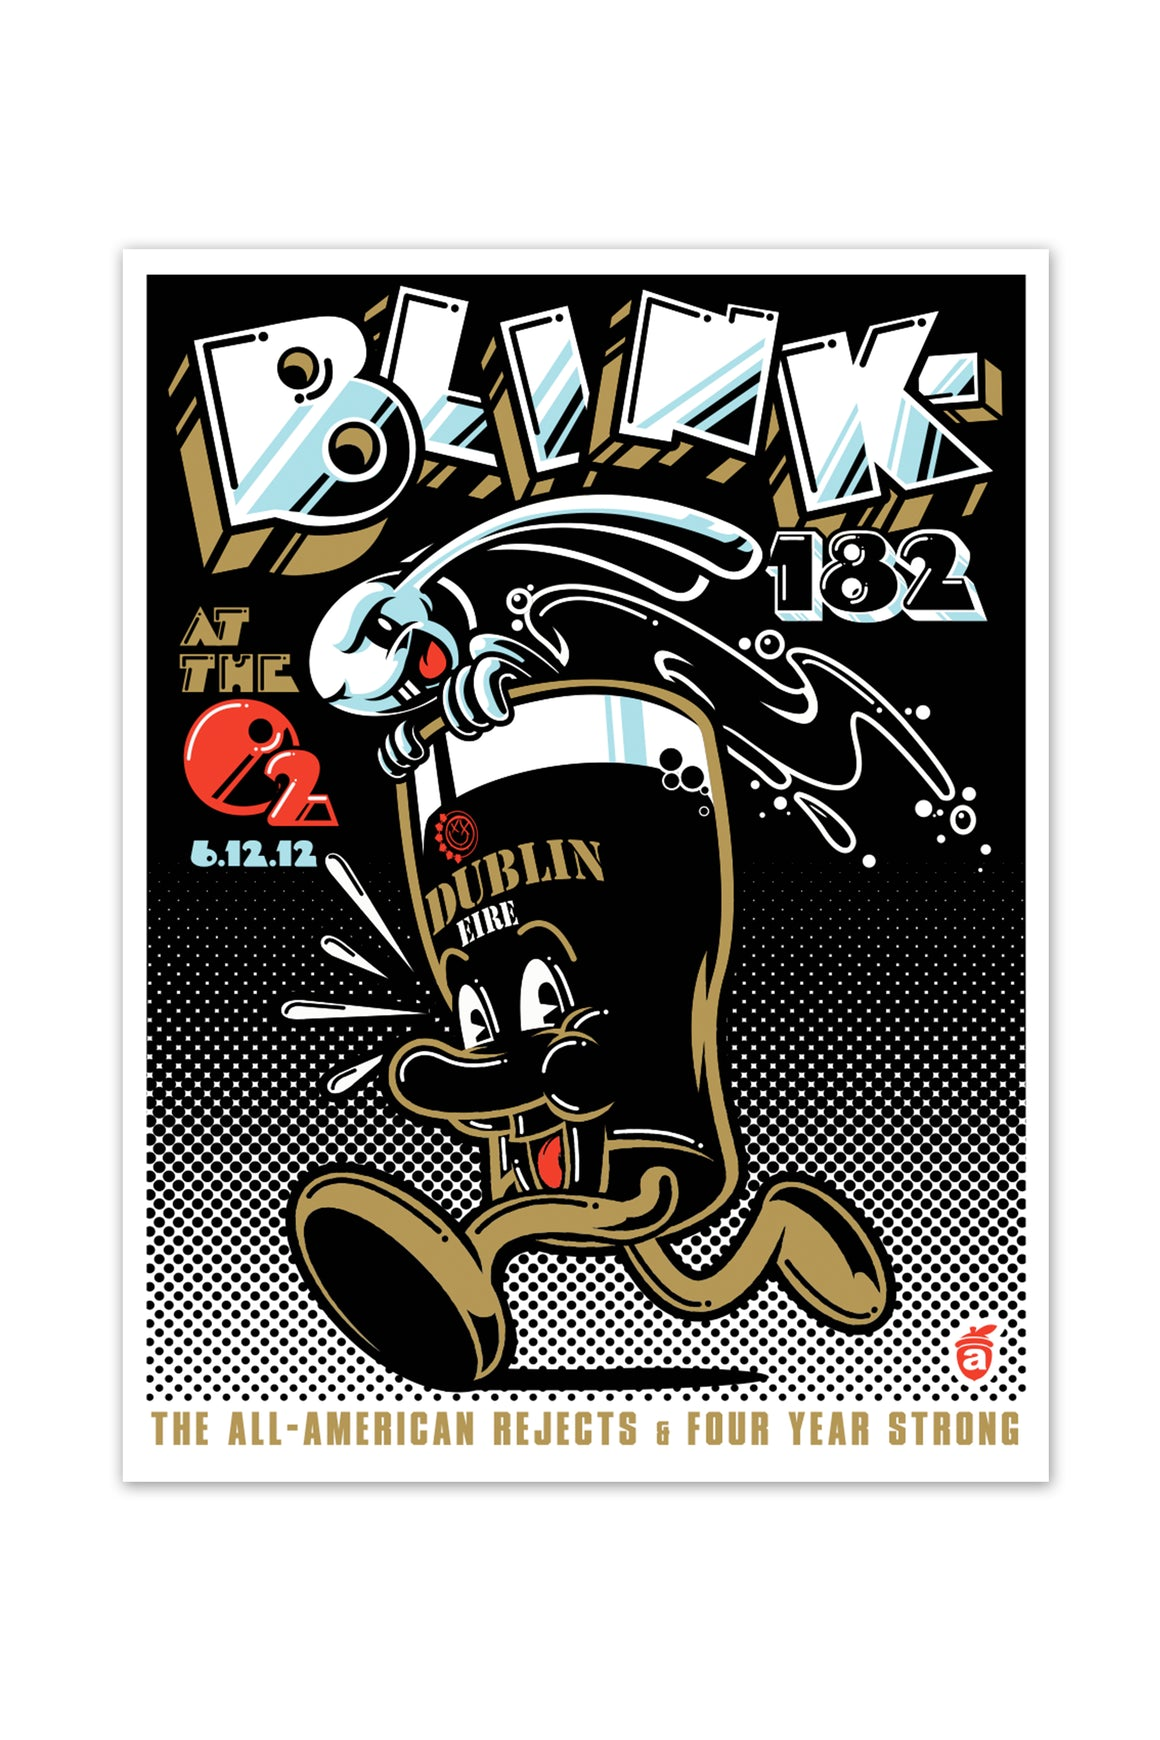 blink-182 6/12/2012 Dublin, Ireland Event Poster